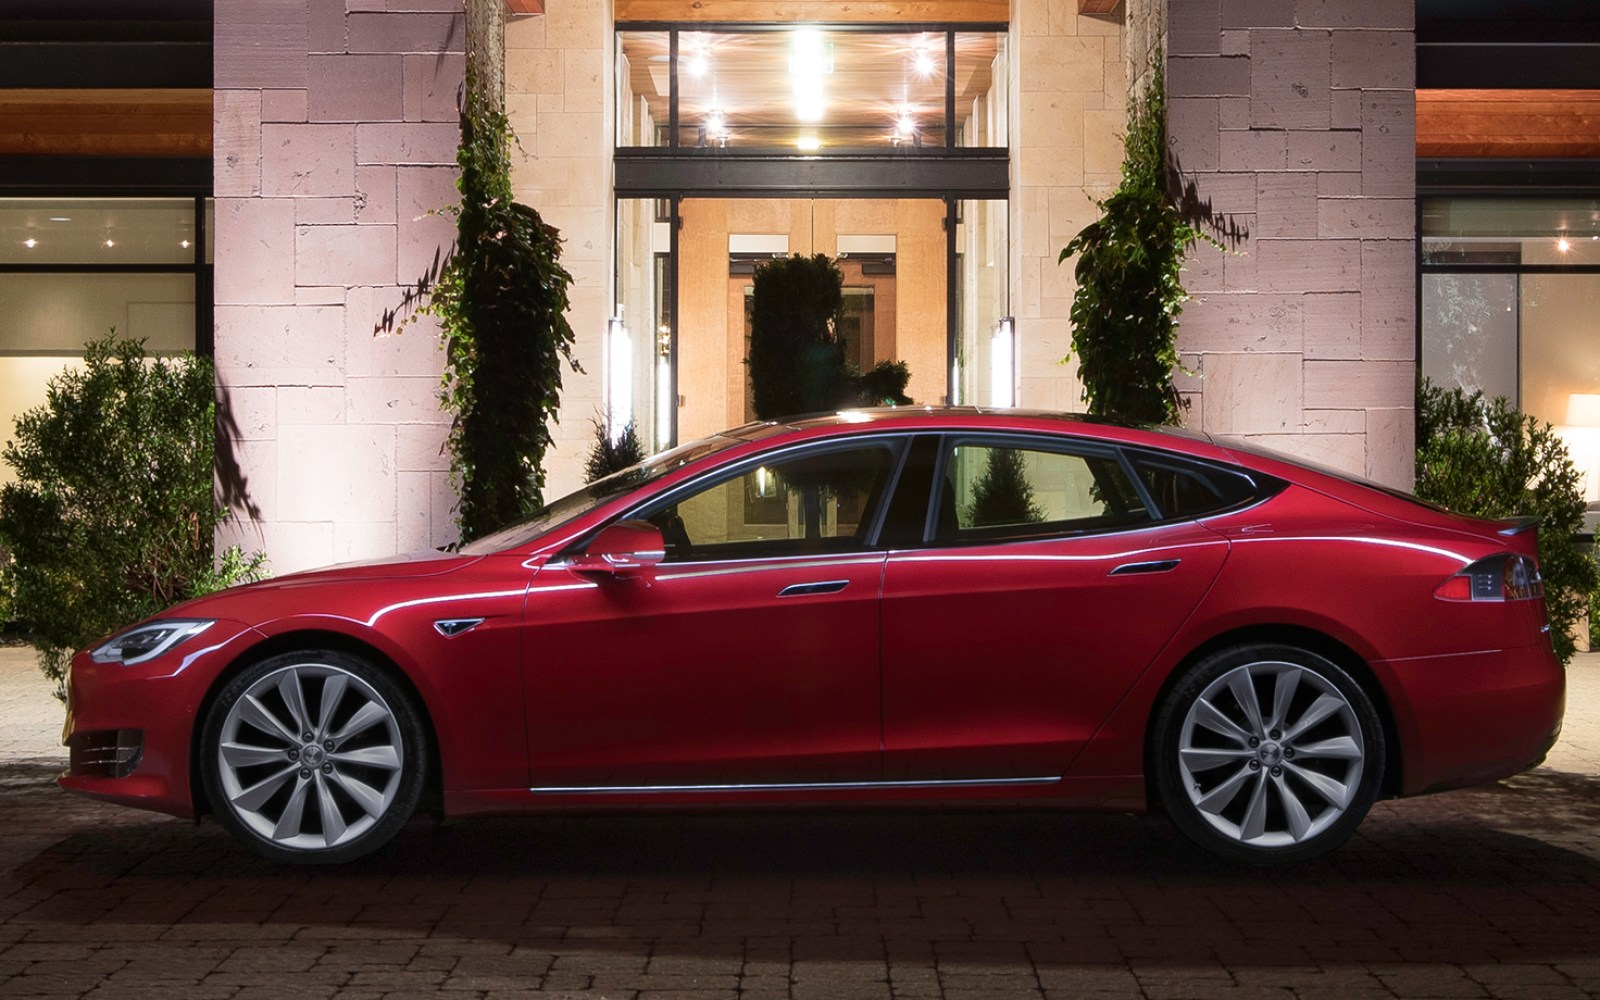 Tesla is discontinuing its least expensive Model S with 60 kWh battery pack next month